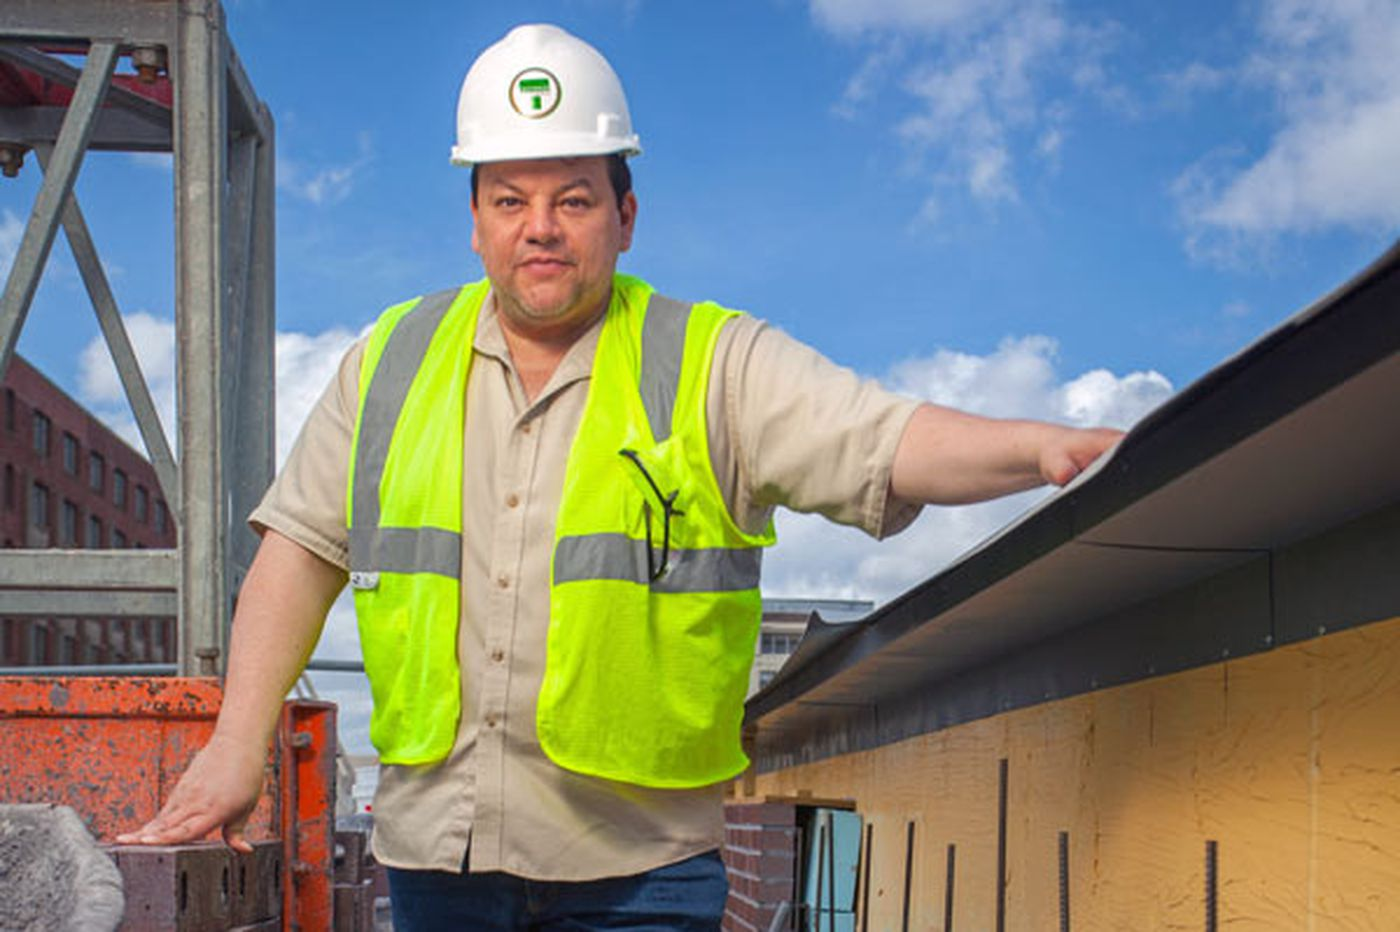 Self-made Hispanic contractor breaks ethnic barriers